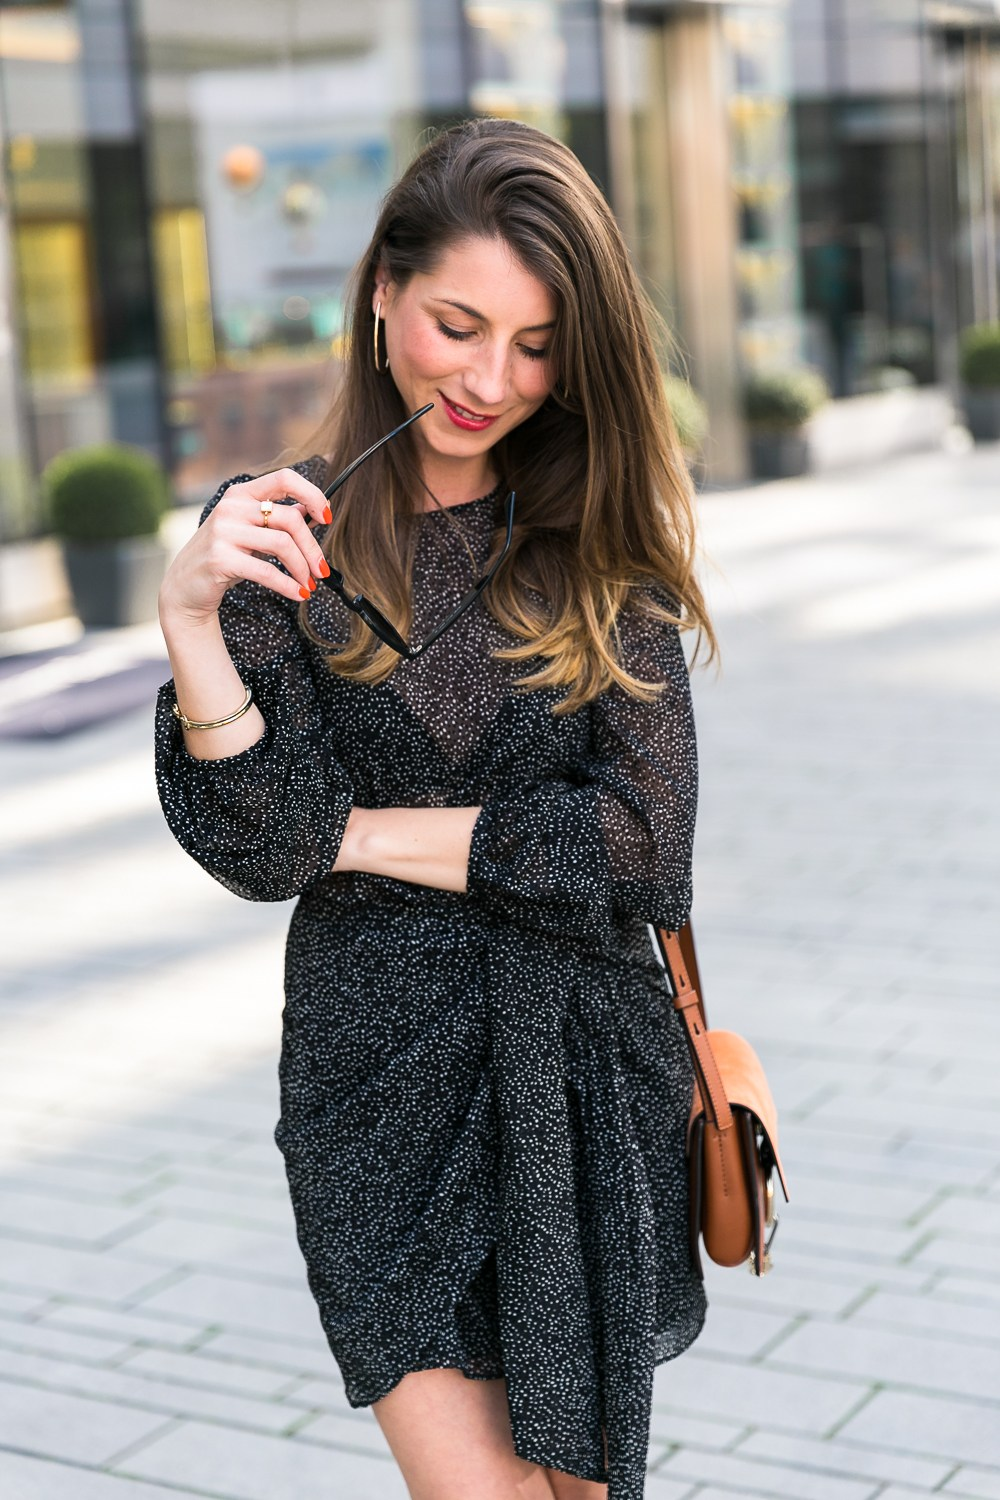 modeblog dress dots black chic outfit how to wear fashion blogger chloe bag heels